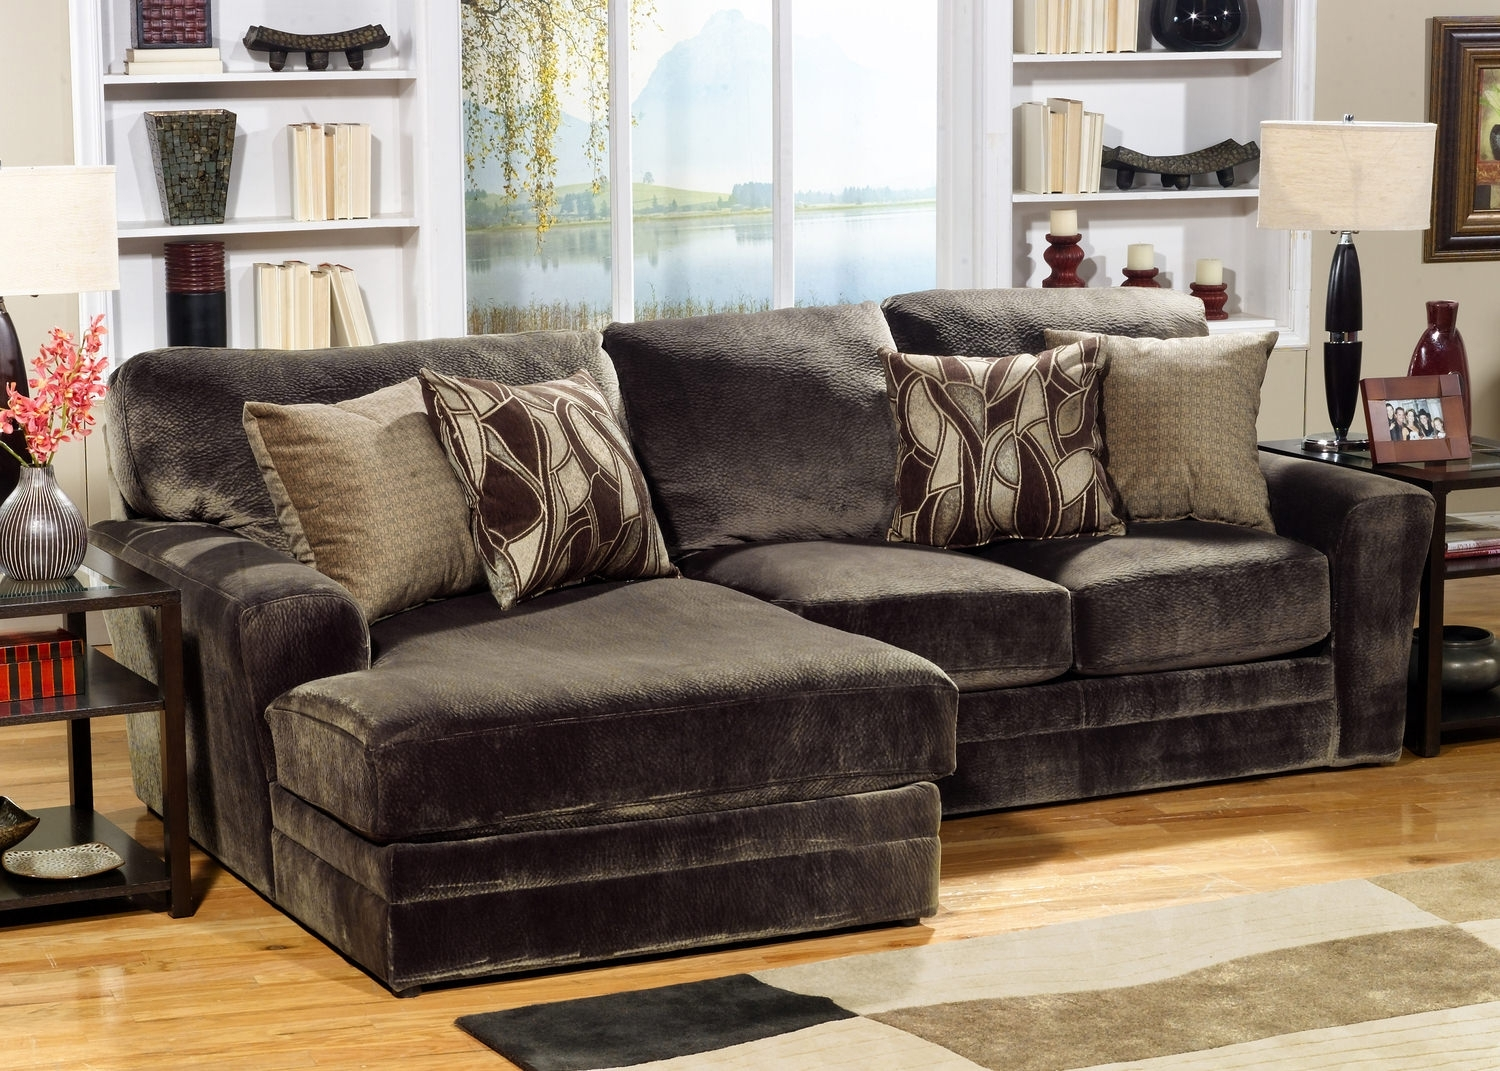 cloud 2 sectional sofa super amart furniture ideas st mn sofas explore 8 of 10